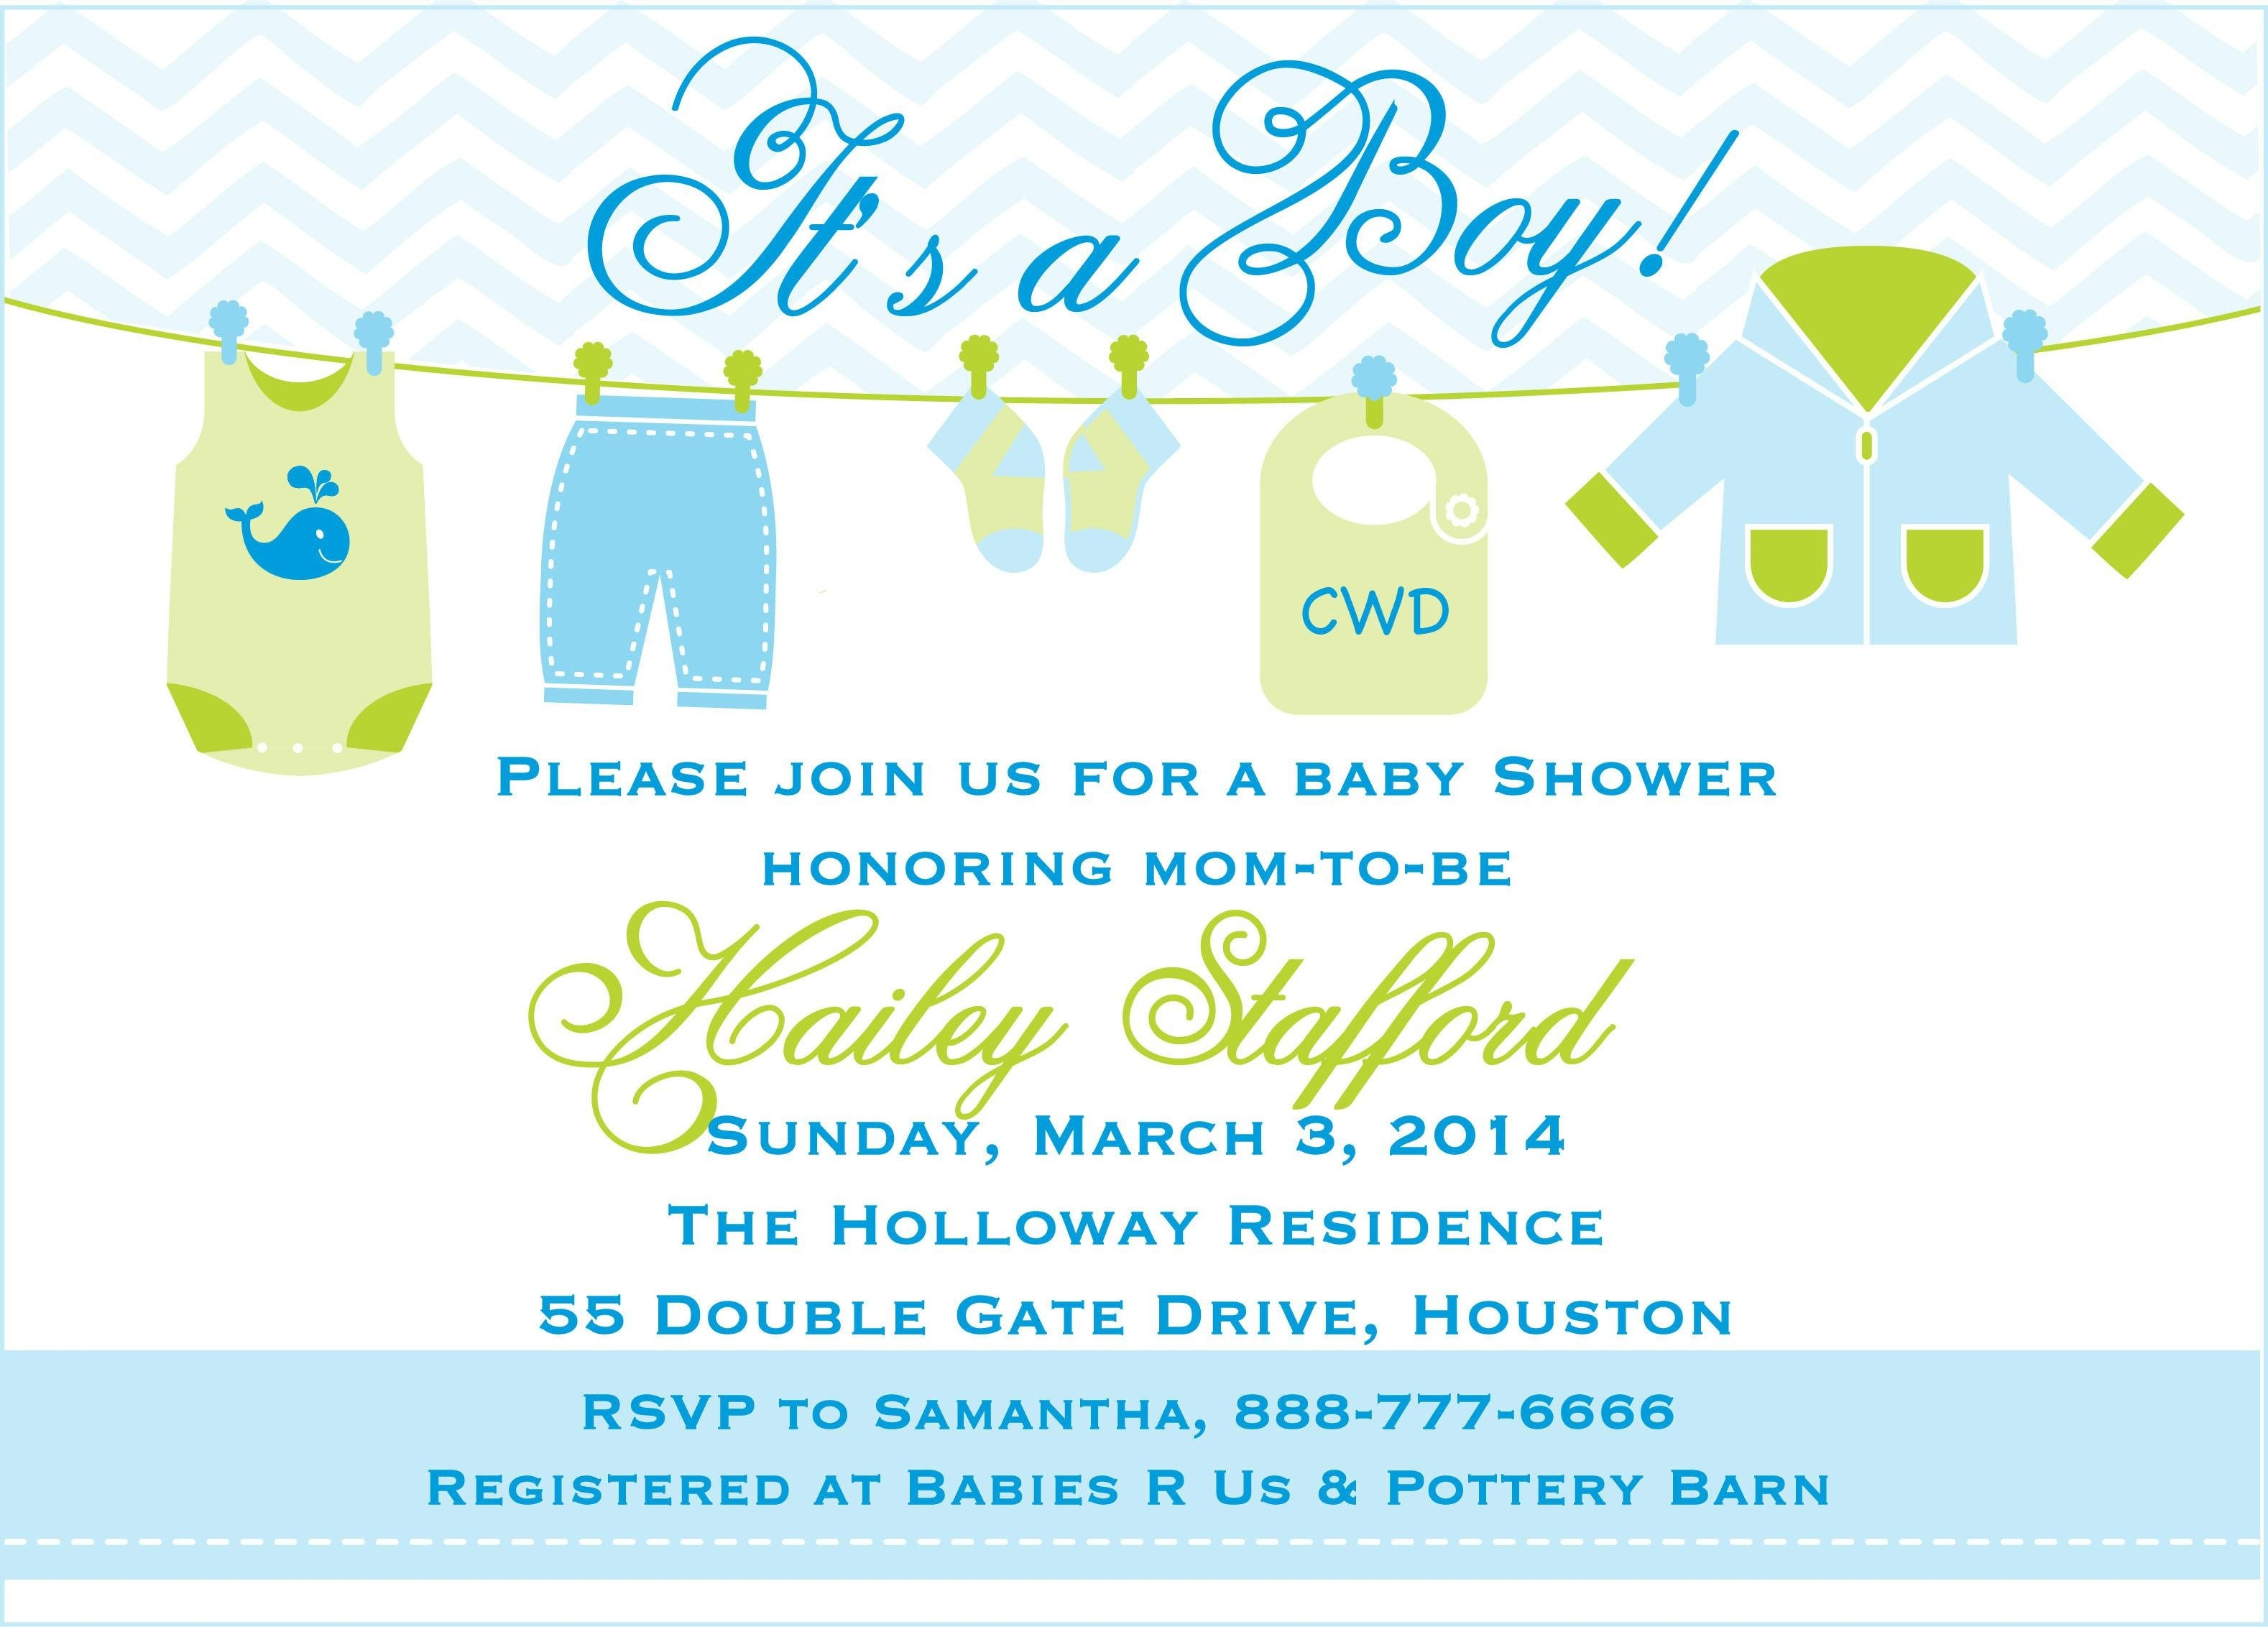 Full Size of Baby Shower:sturdy Baby Shower Invitation Template Image Concepts Baby Shower Invitation Template Baby Shower Props Princess Baby Shower Baby Shower Accessories Baby Shower Gifts For Girls Personalized Baby Shower Cute Baby Shower Gifts Printable Baby Shower Invitations Templates For Boys